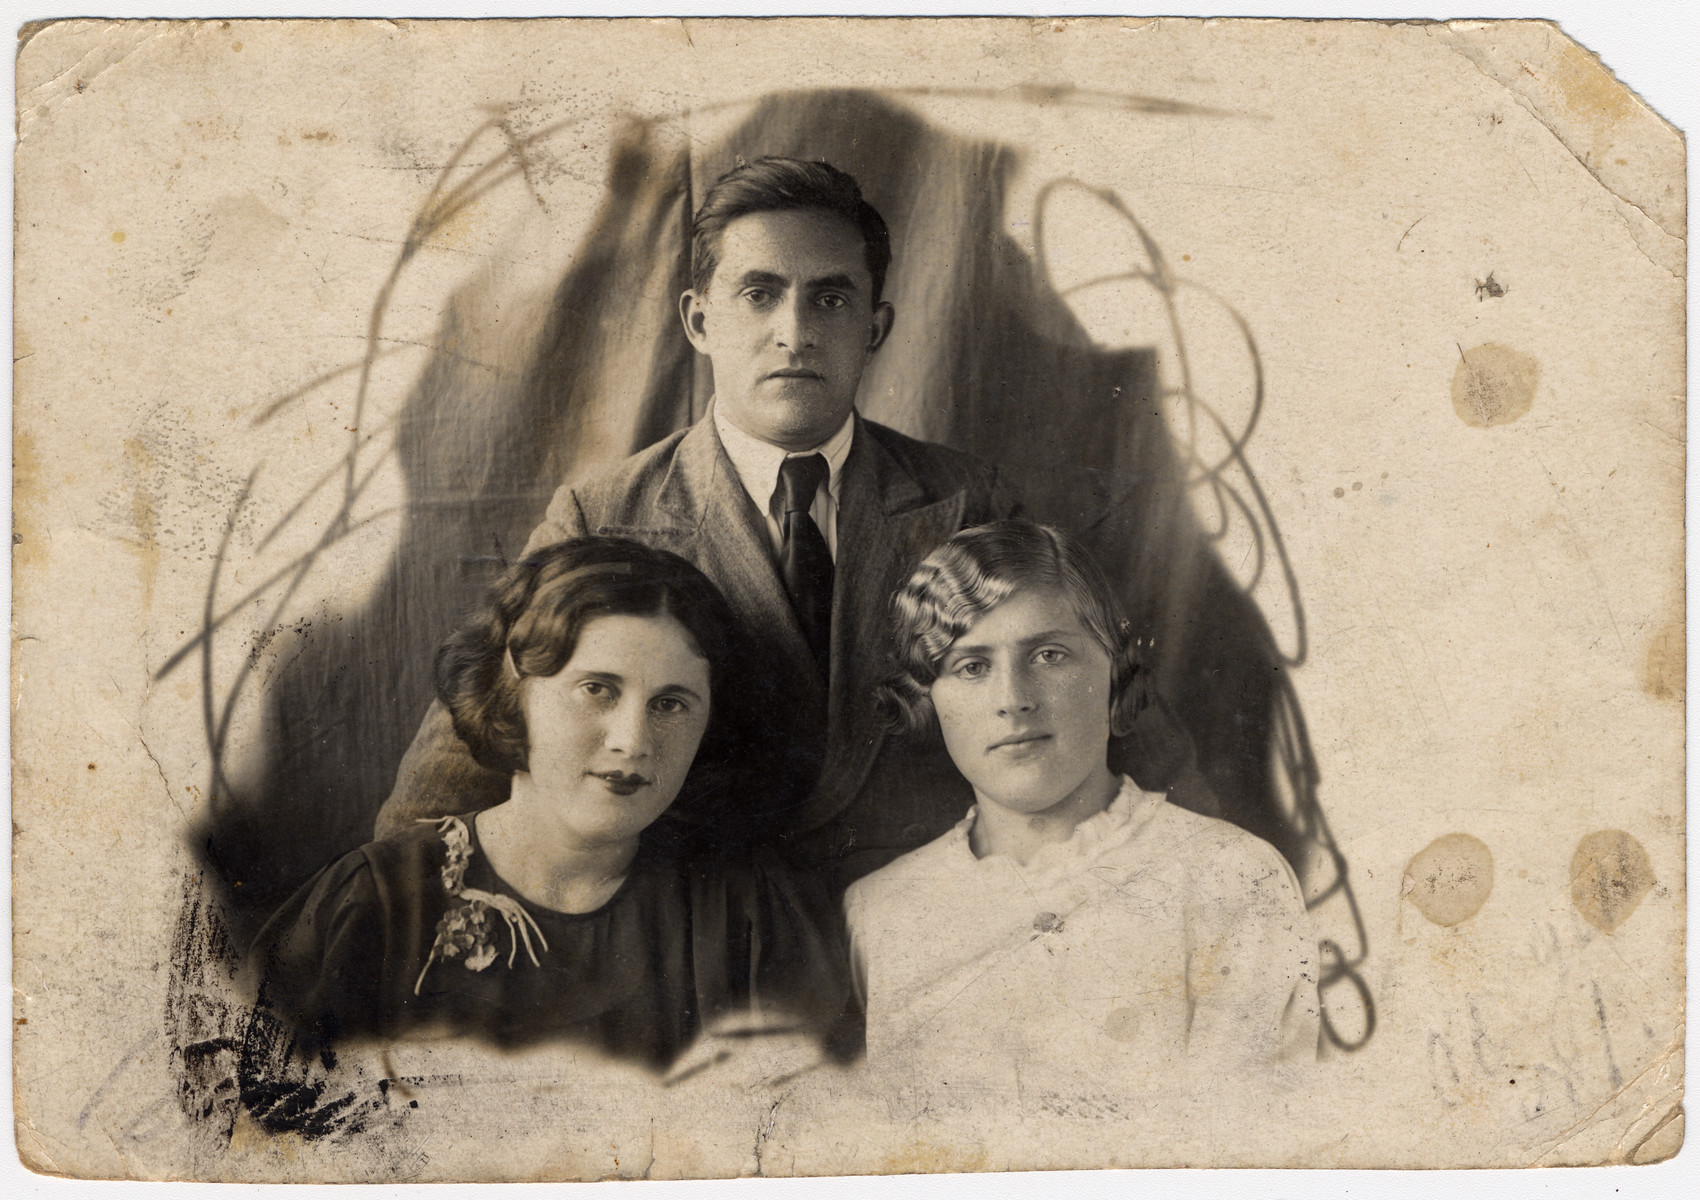 Studio portrait of Petya Ziegelman with one of his sisters (left) and his wife Fania (right).